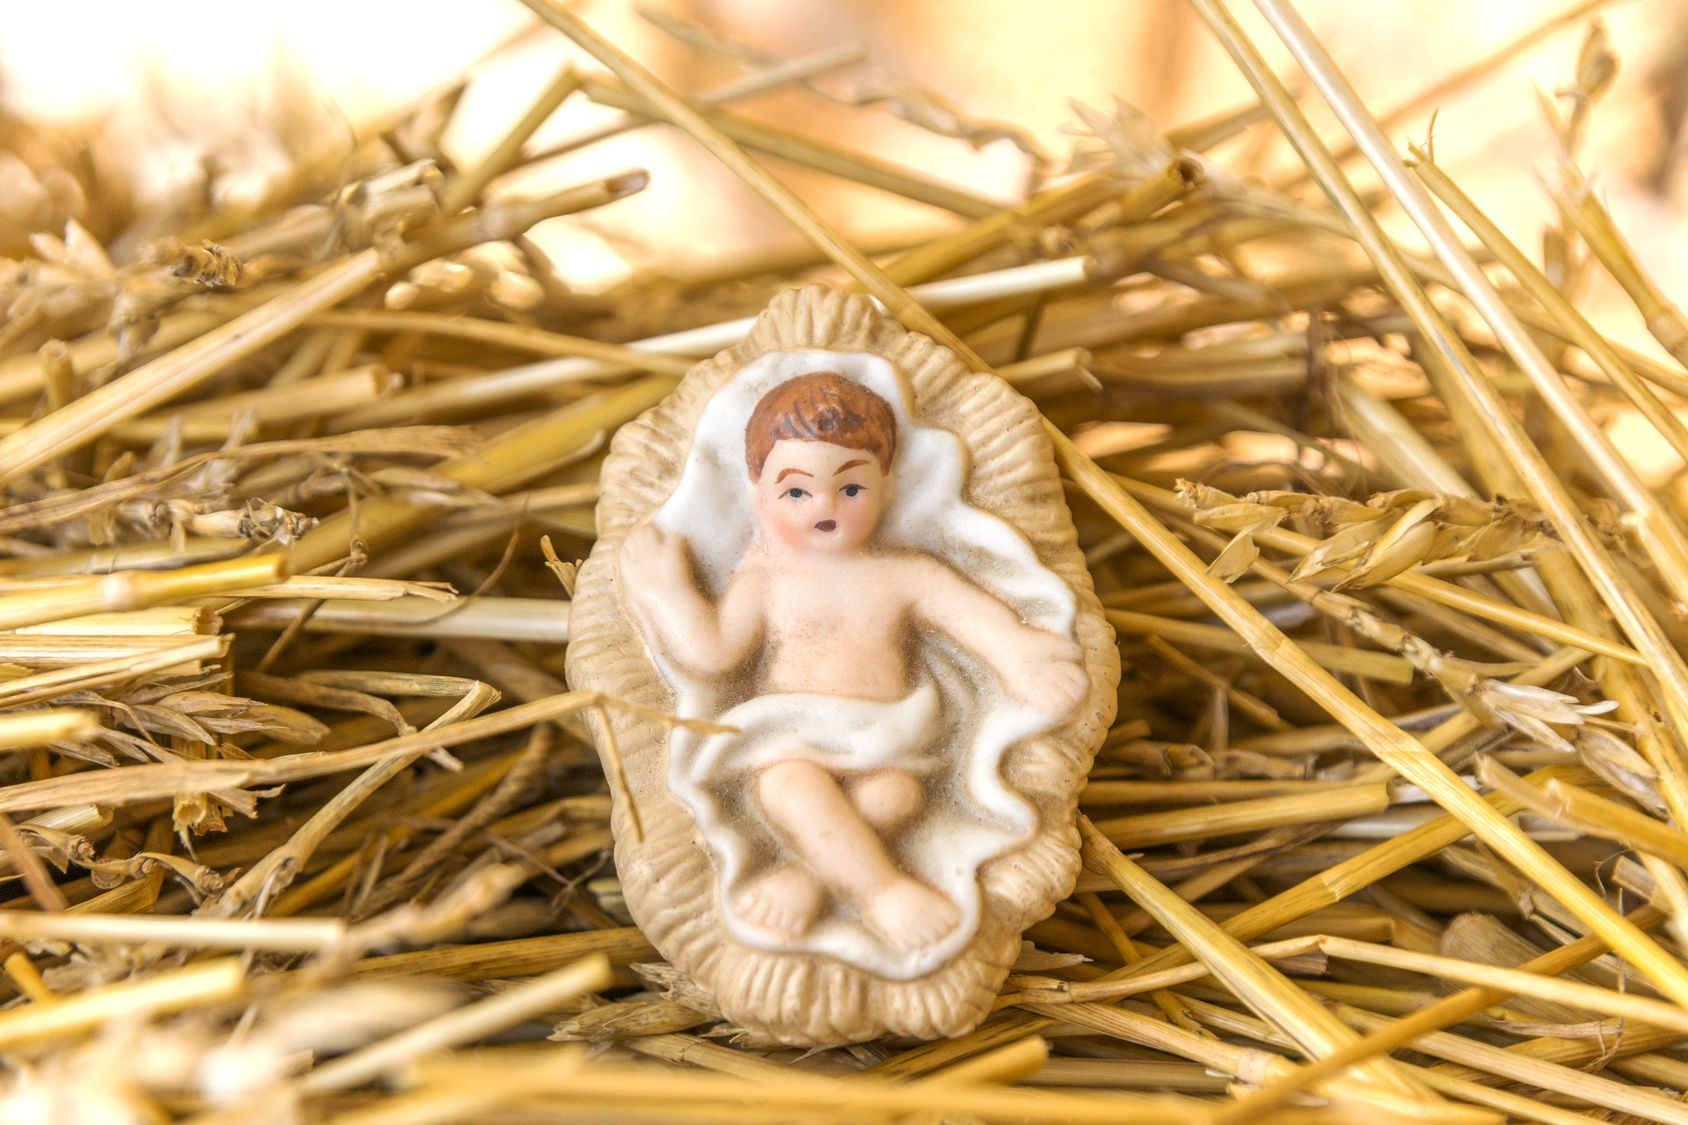 Infant Jesus nativity decoration on a bed of straw against glowi